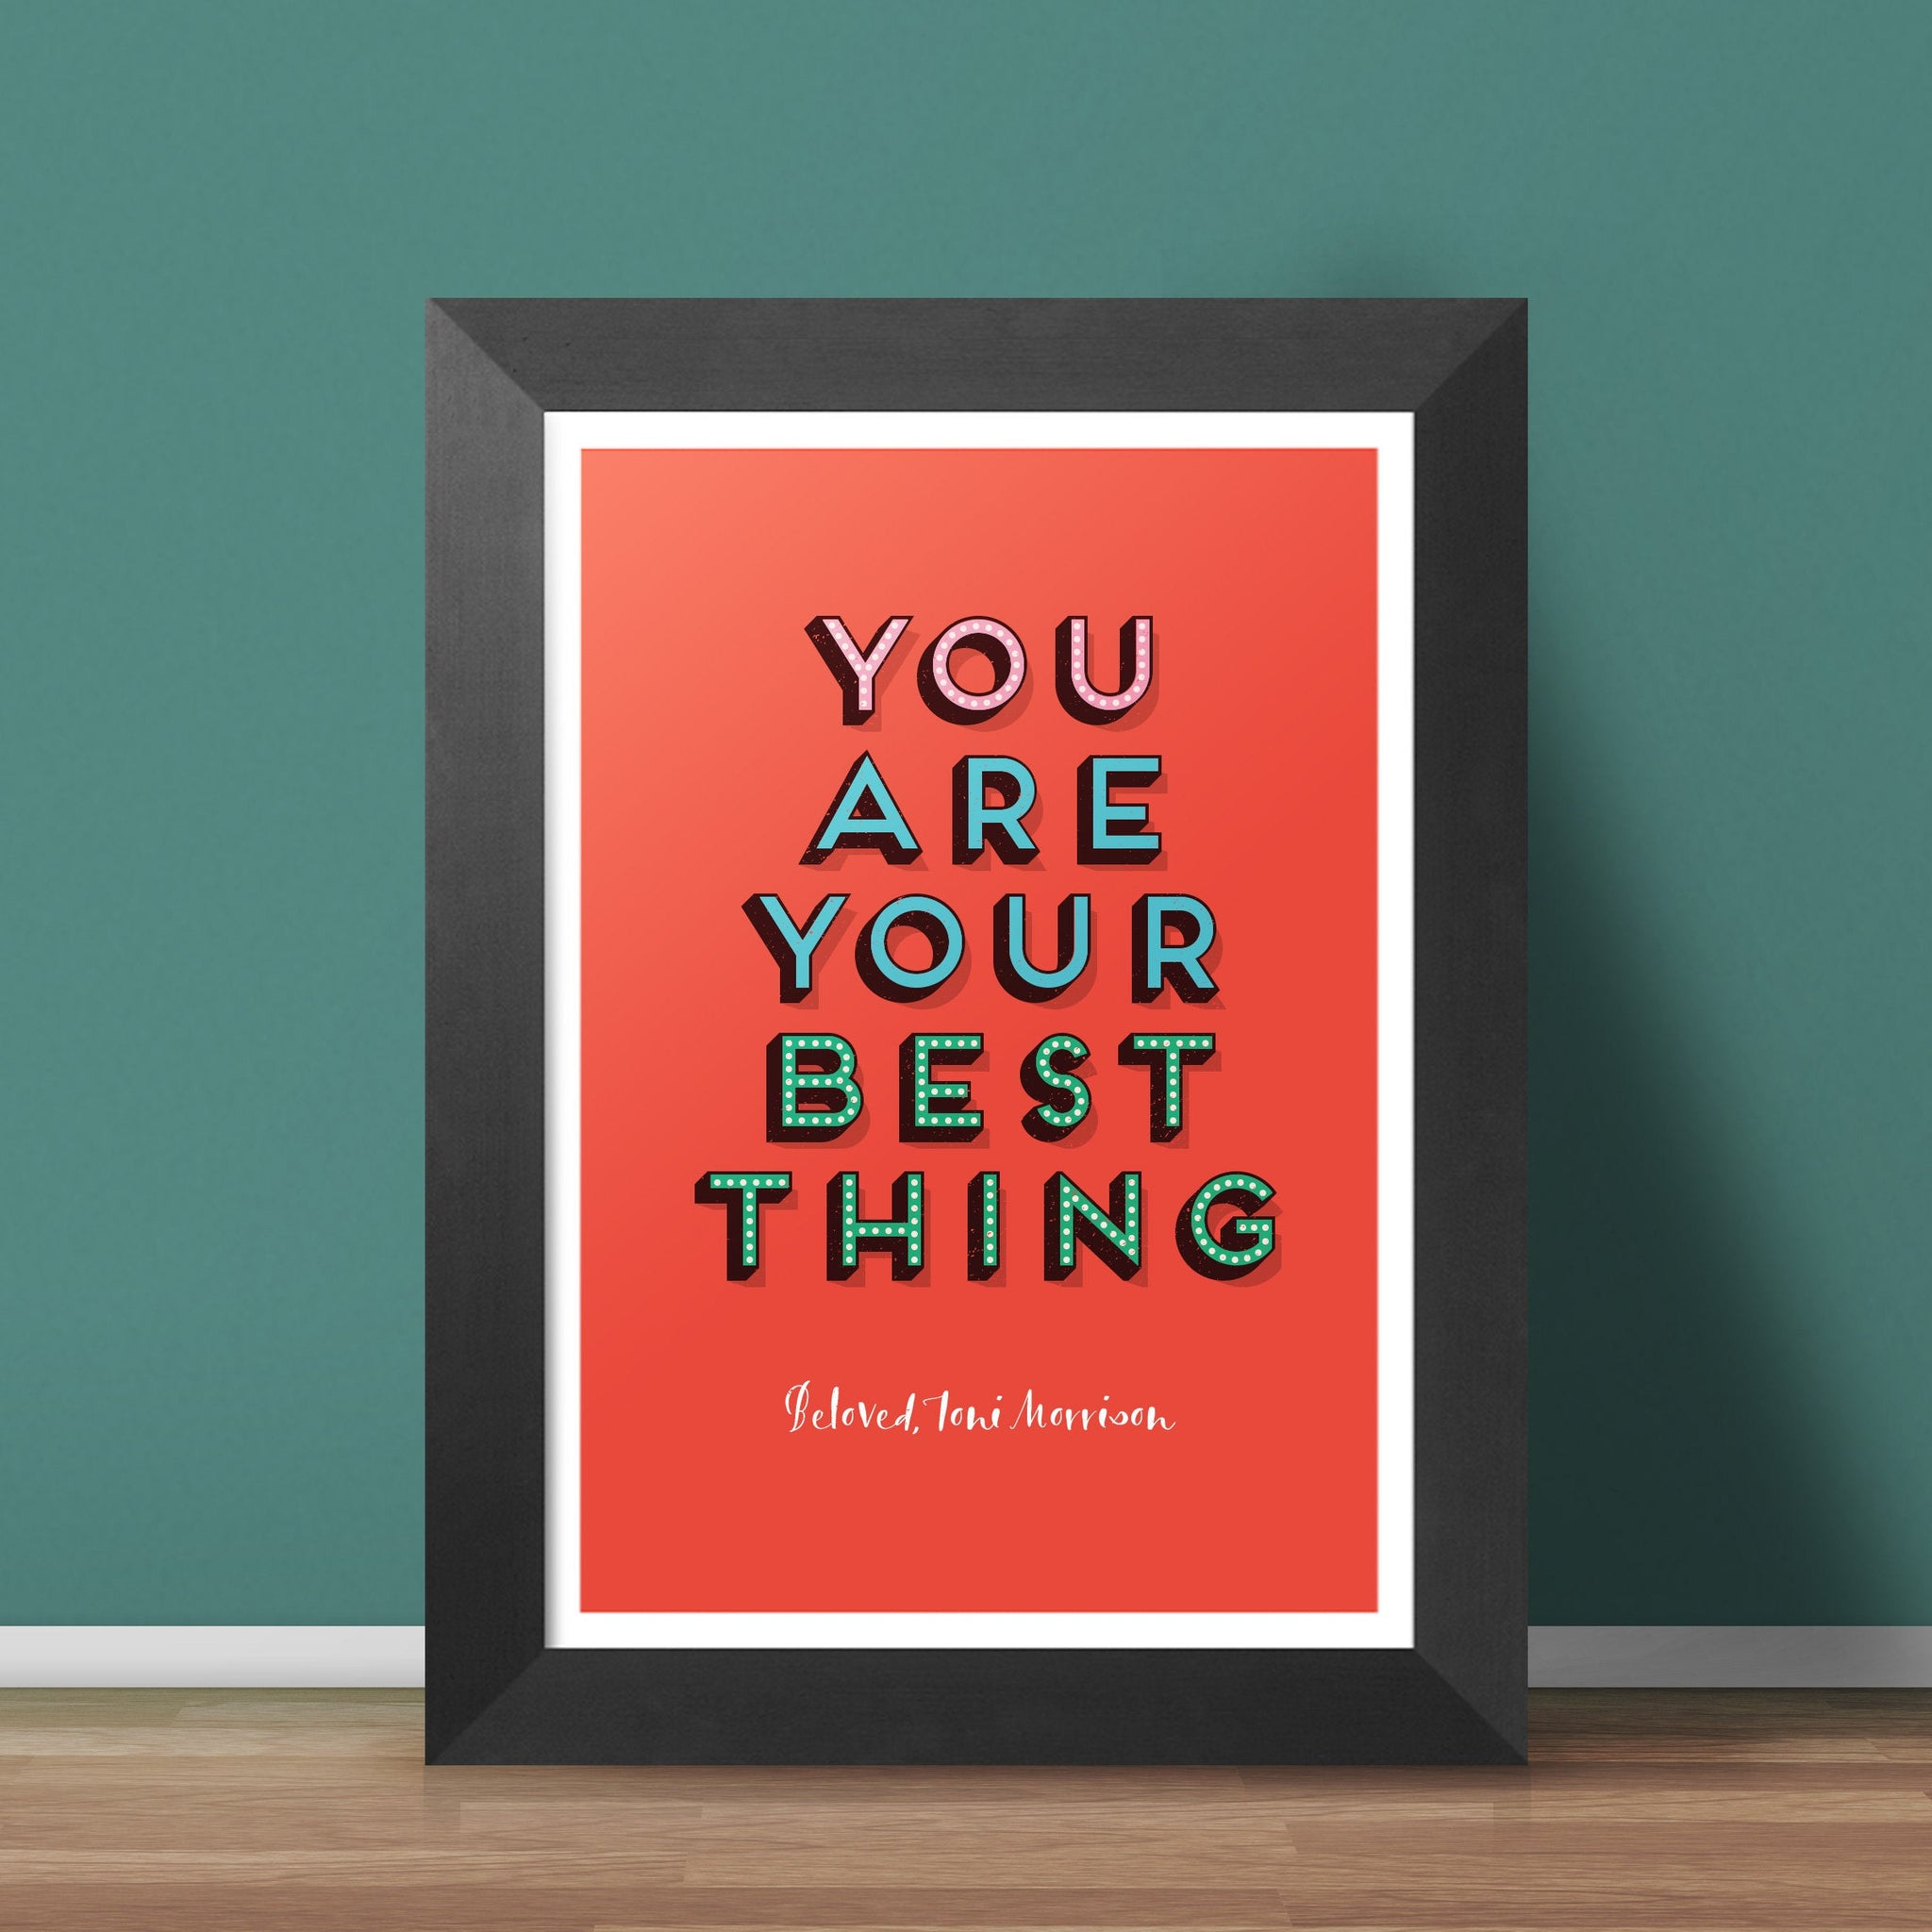 "FRAMED - You Are Your Best Thing Giclée Print - Toni Morrison Inspirational Literary Quote 14"" x 10"""